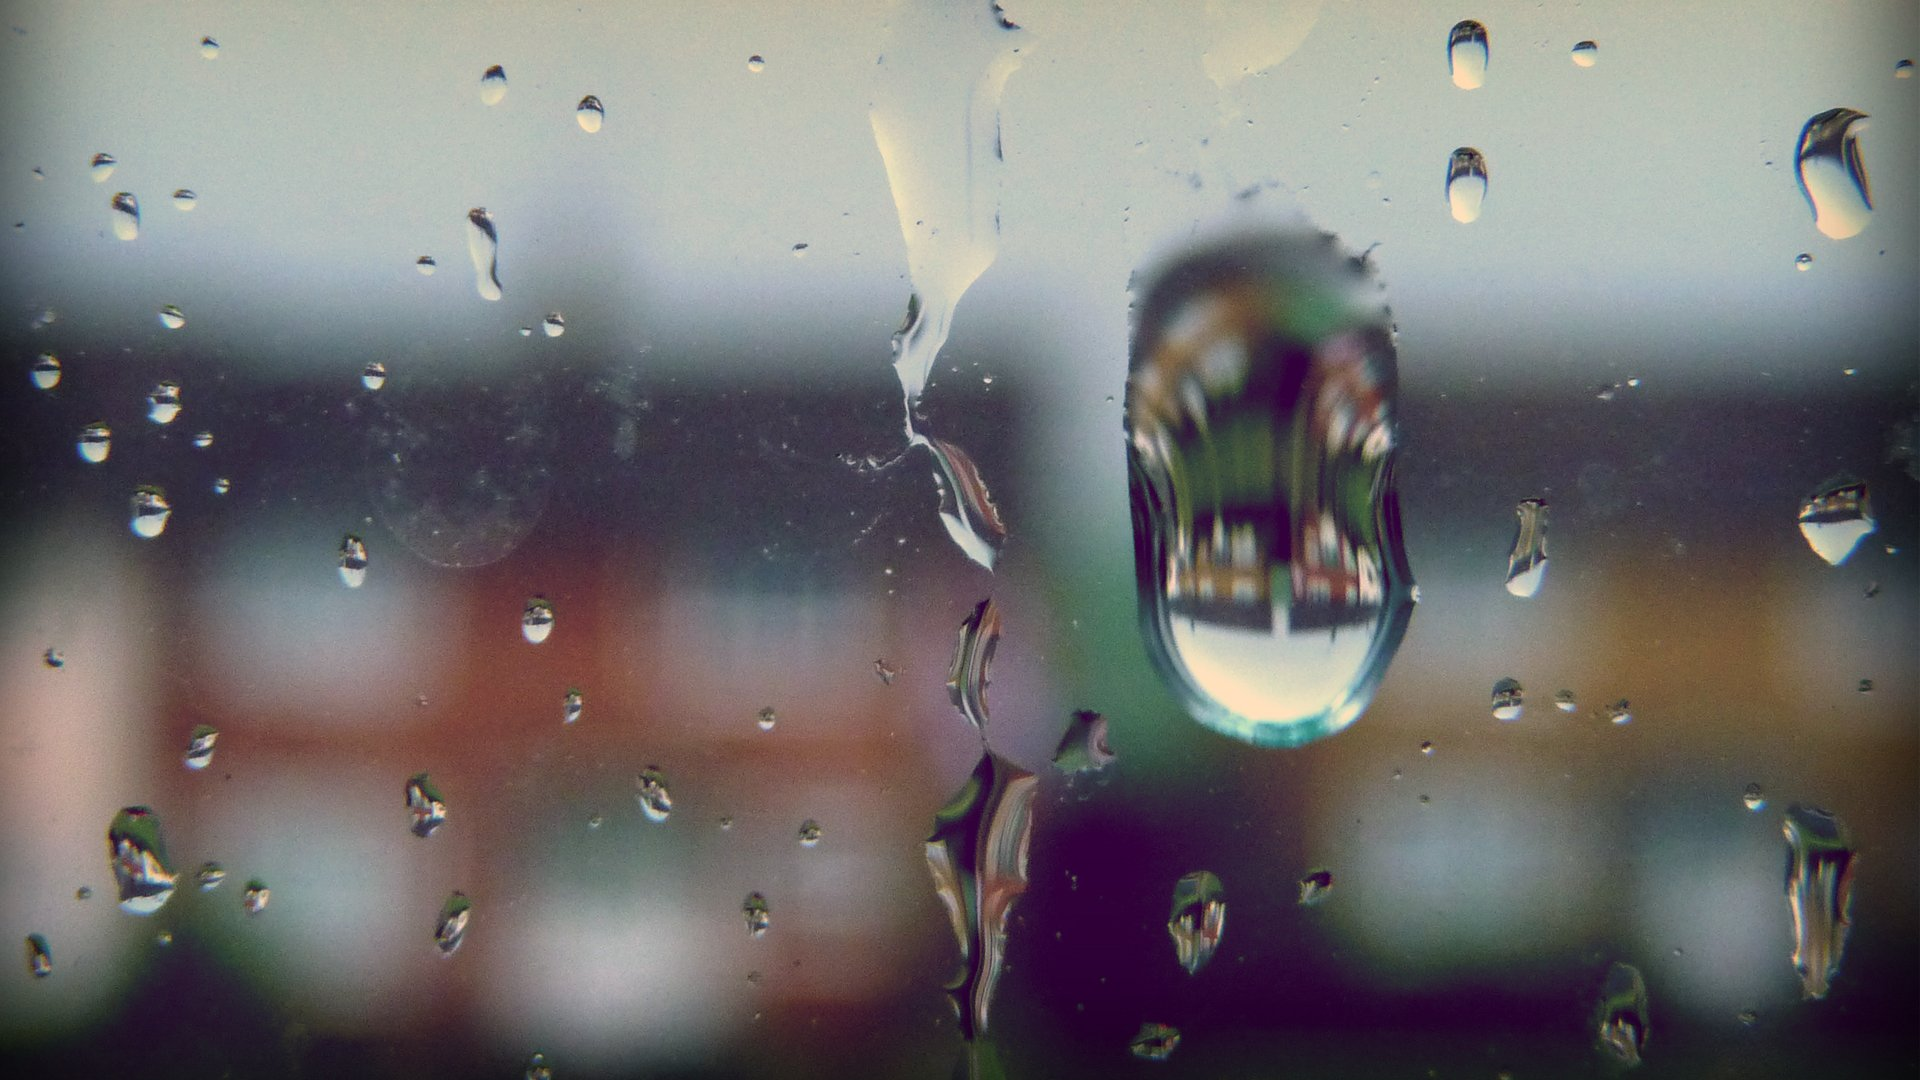 Free Raindrops Wallpapers, HDQ Cover Free Raindrops Wallpapers 1920x1080